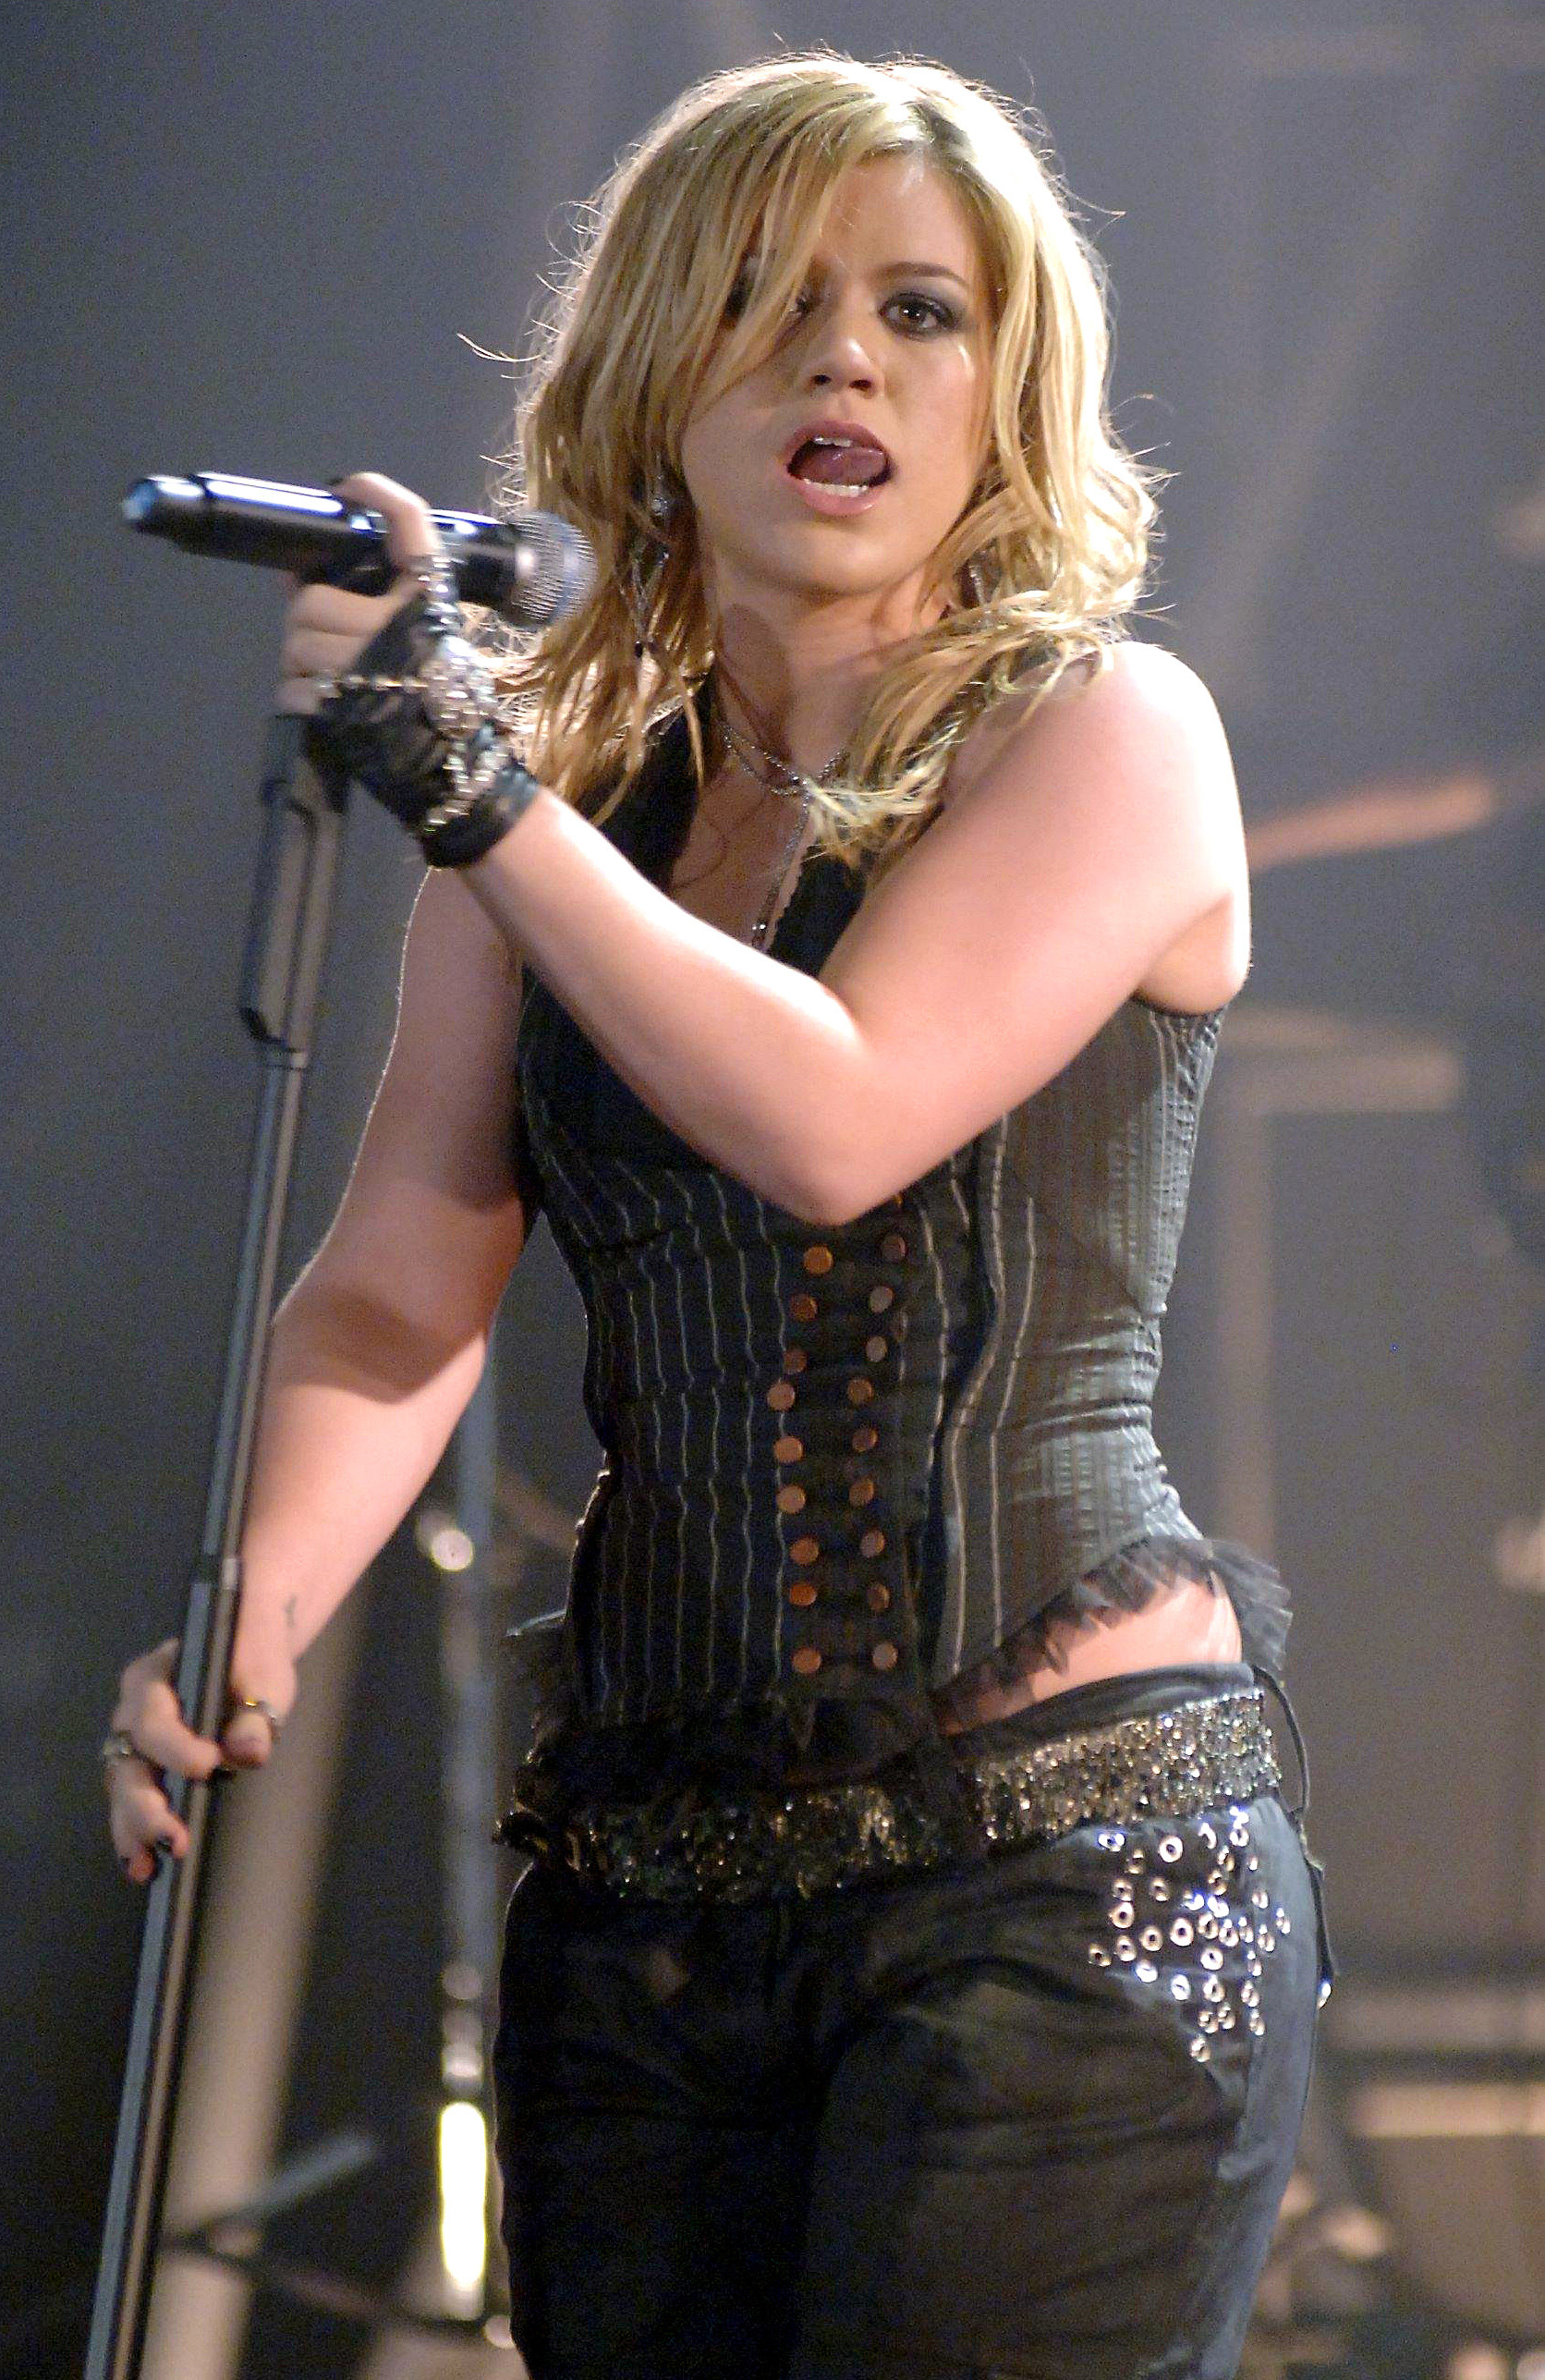 kelly clarkson in a concert